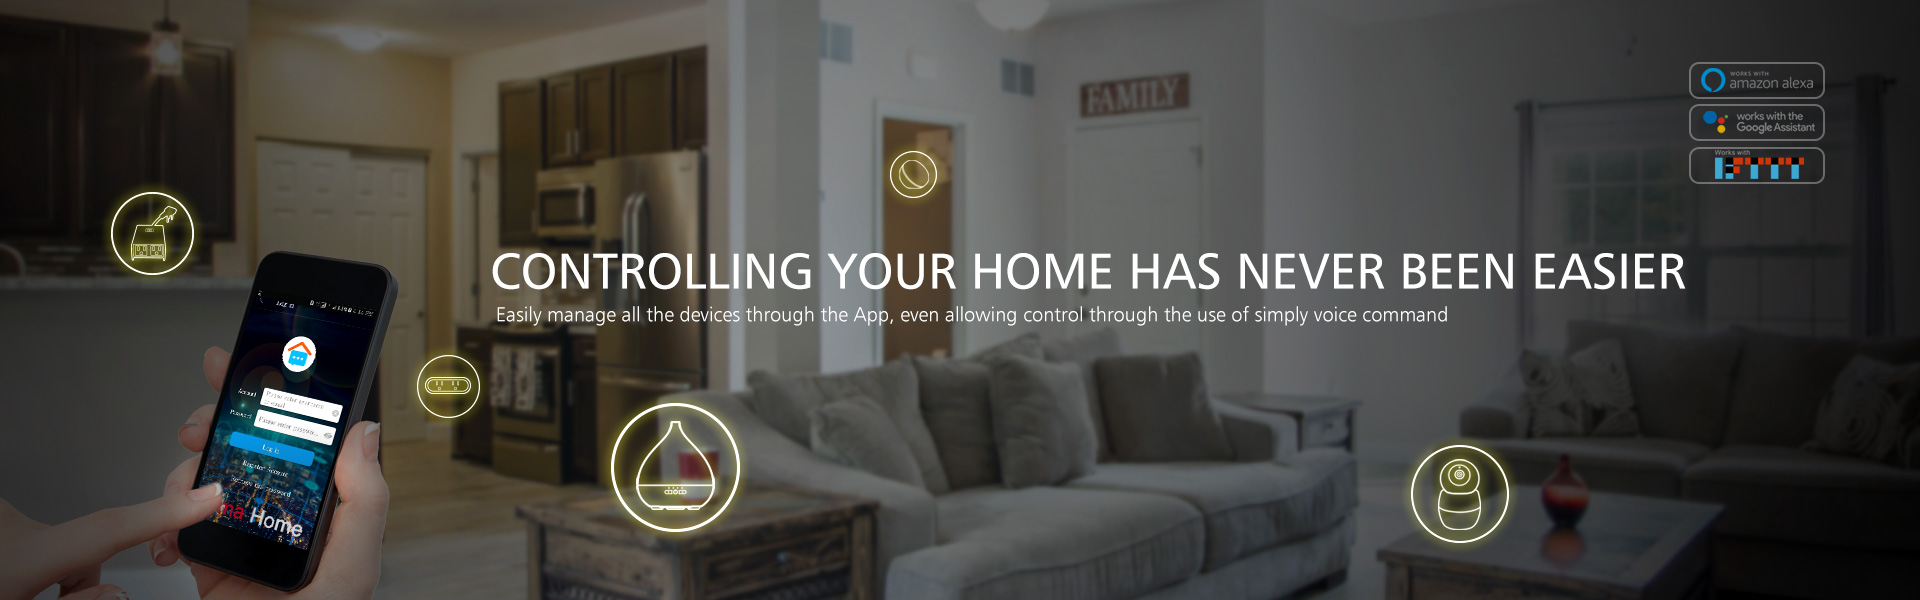 CONTROLLING YOUR HOME HAS NEVER BEEN EASIER